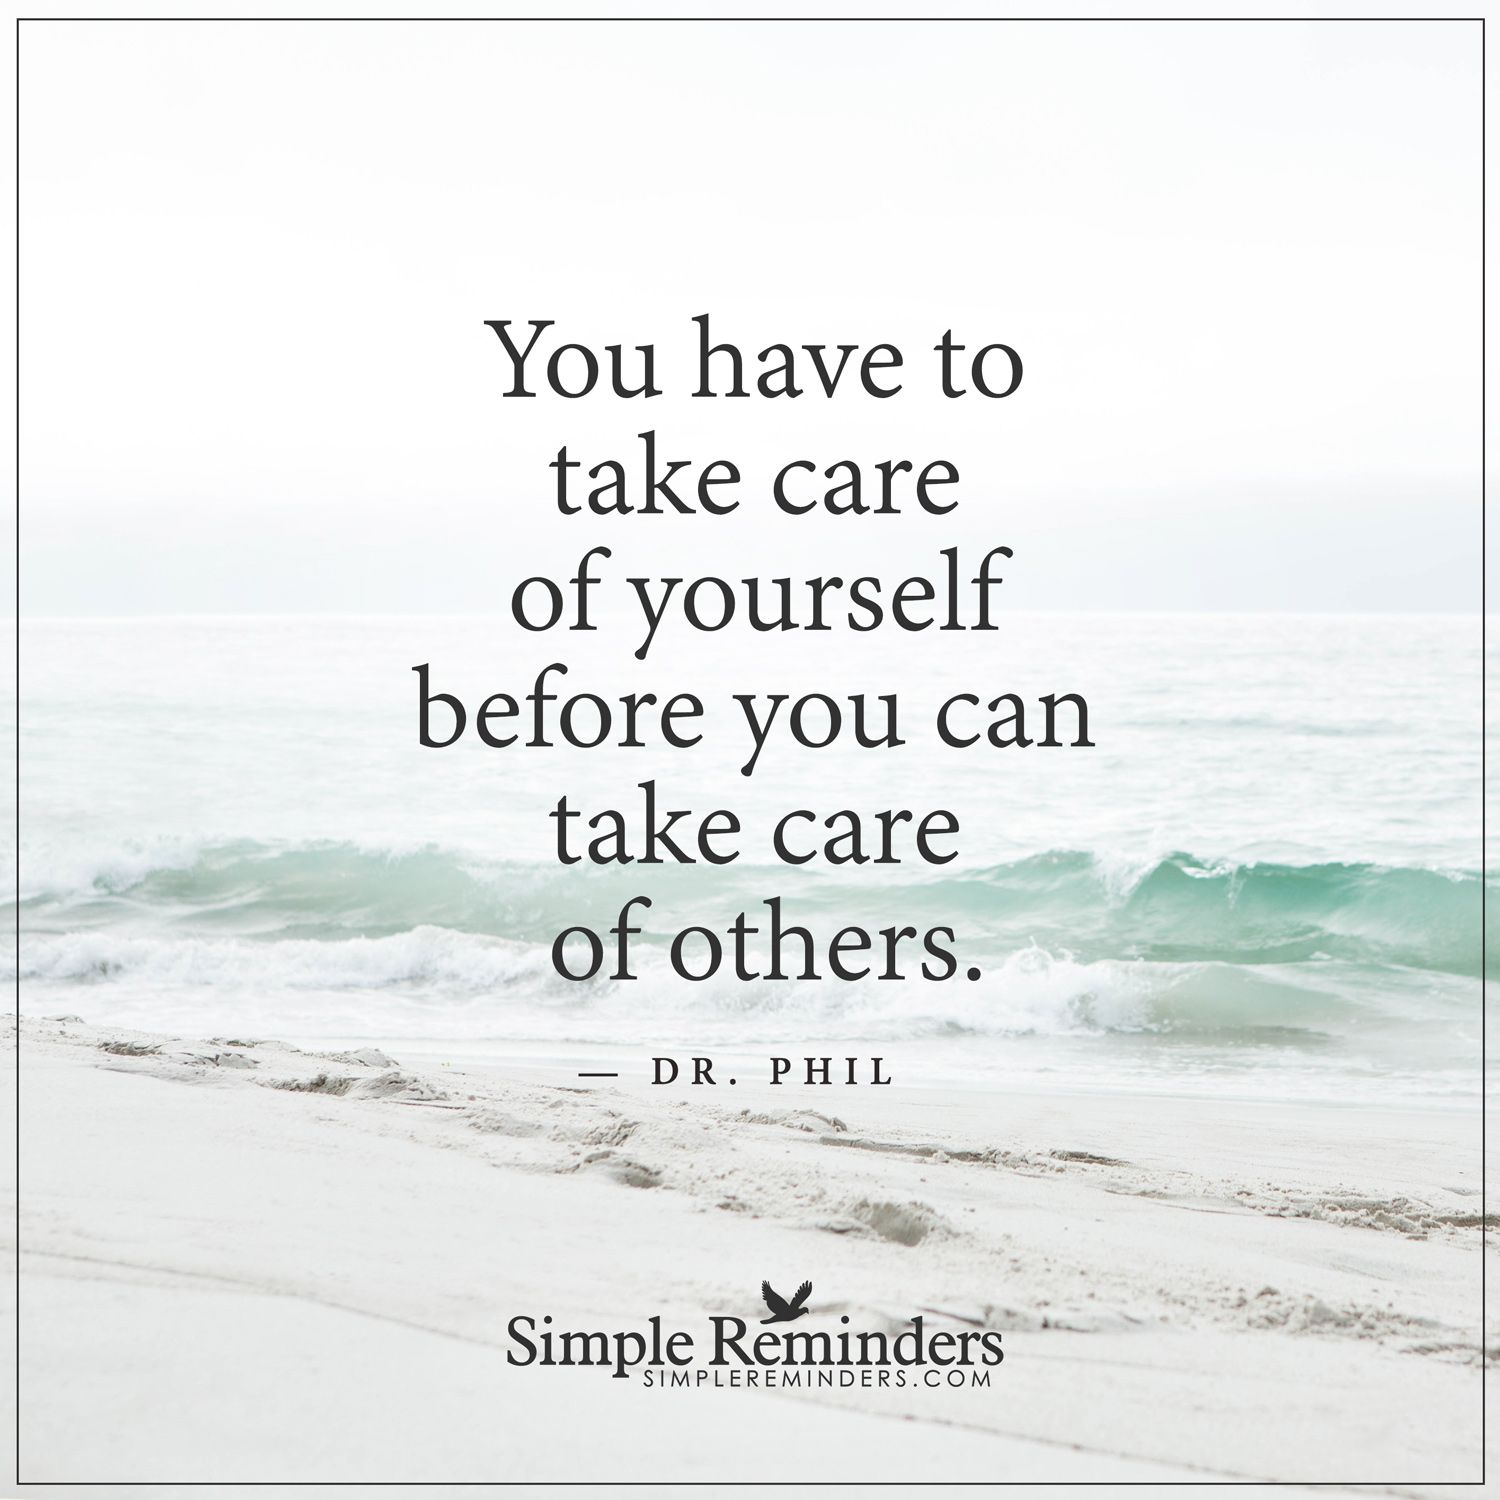 Take Care Of Yourself Quotes Fascinating Httpwwwloalovertakecareofyourselffirst  Take Care Of